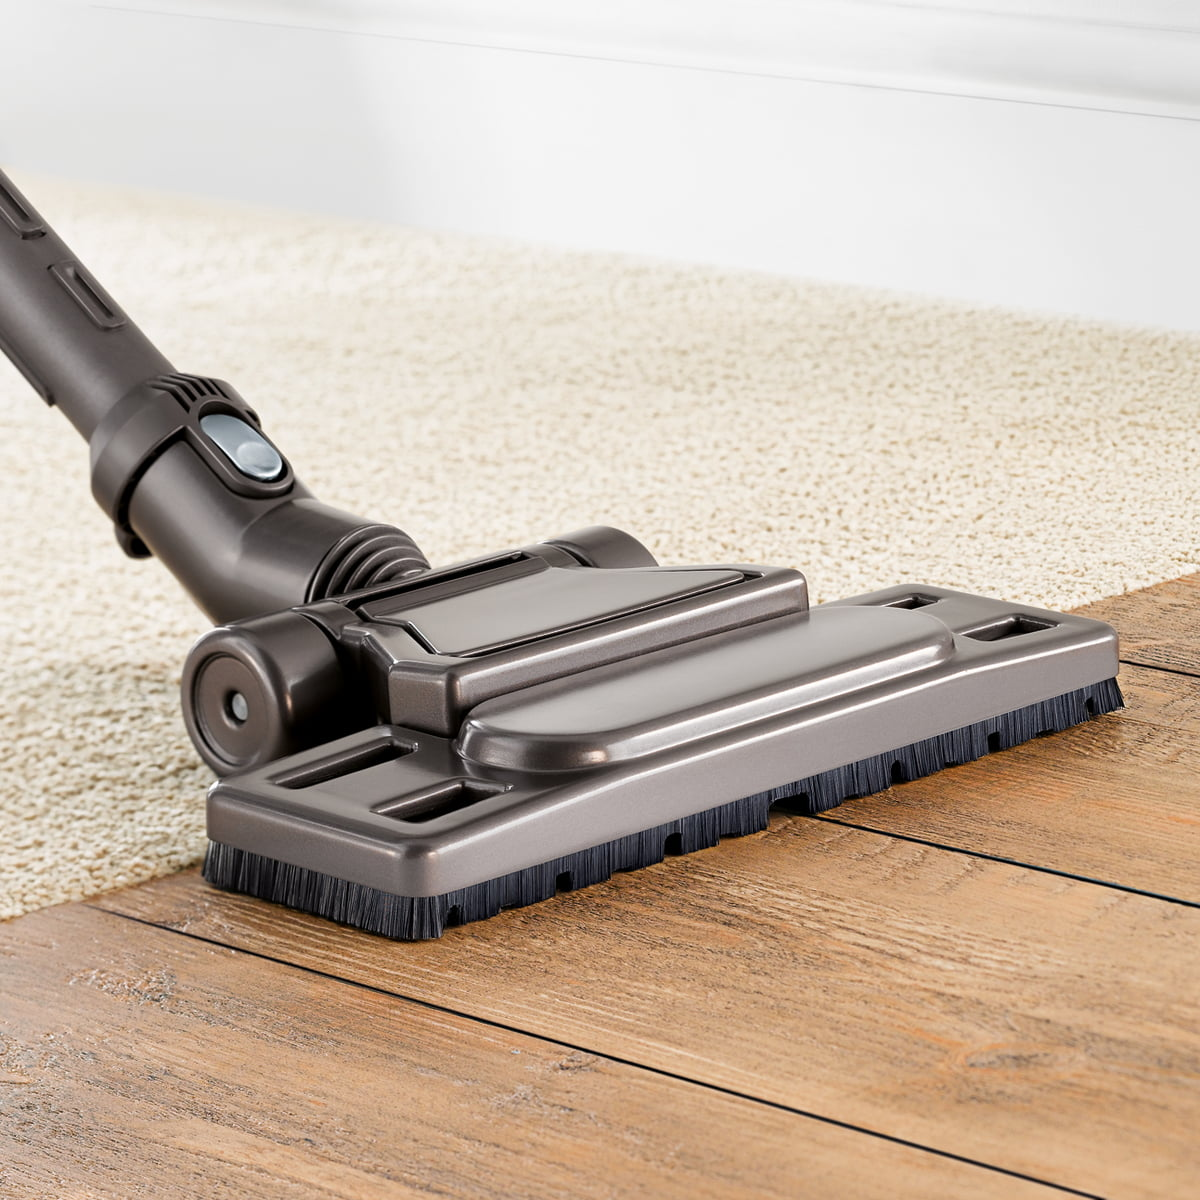 Dyson Hardwood Floor self adjusting cleaner head automatically adjusts for carpets and hard floors Dyson Musclehead Floor Nozzle In Use